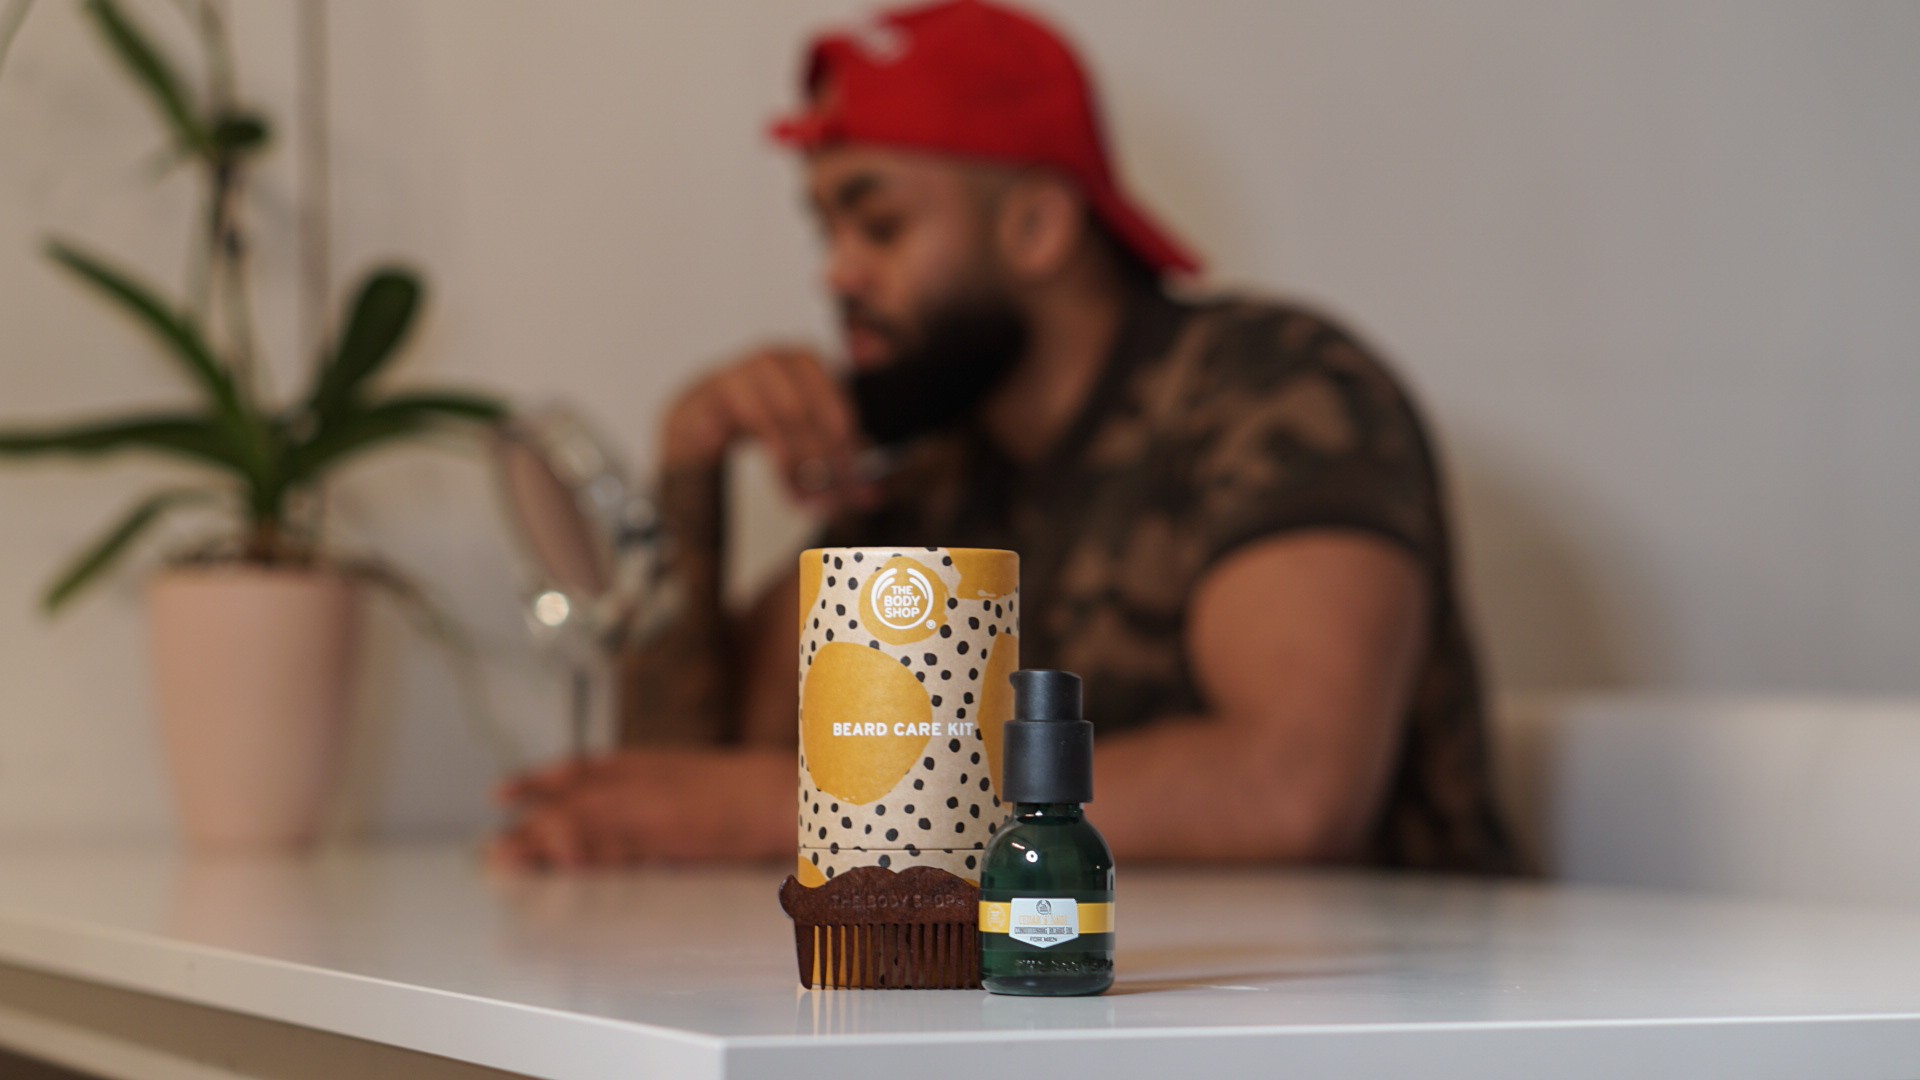 BEARD CARE KIT FROM THE BODY SHOP